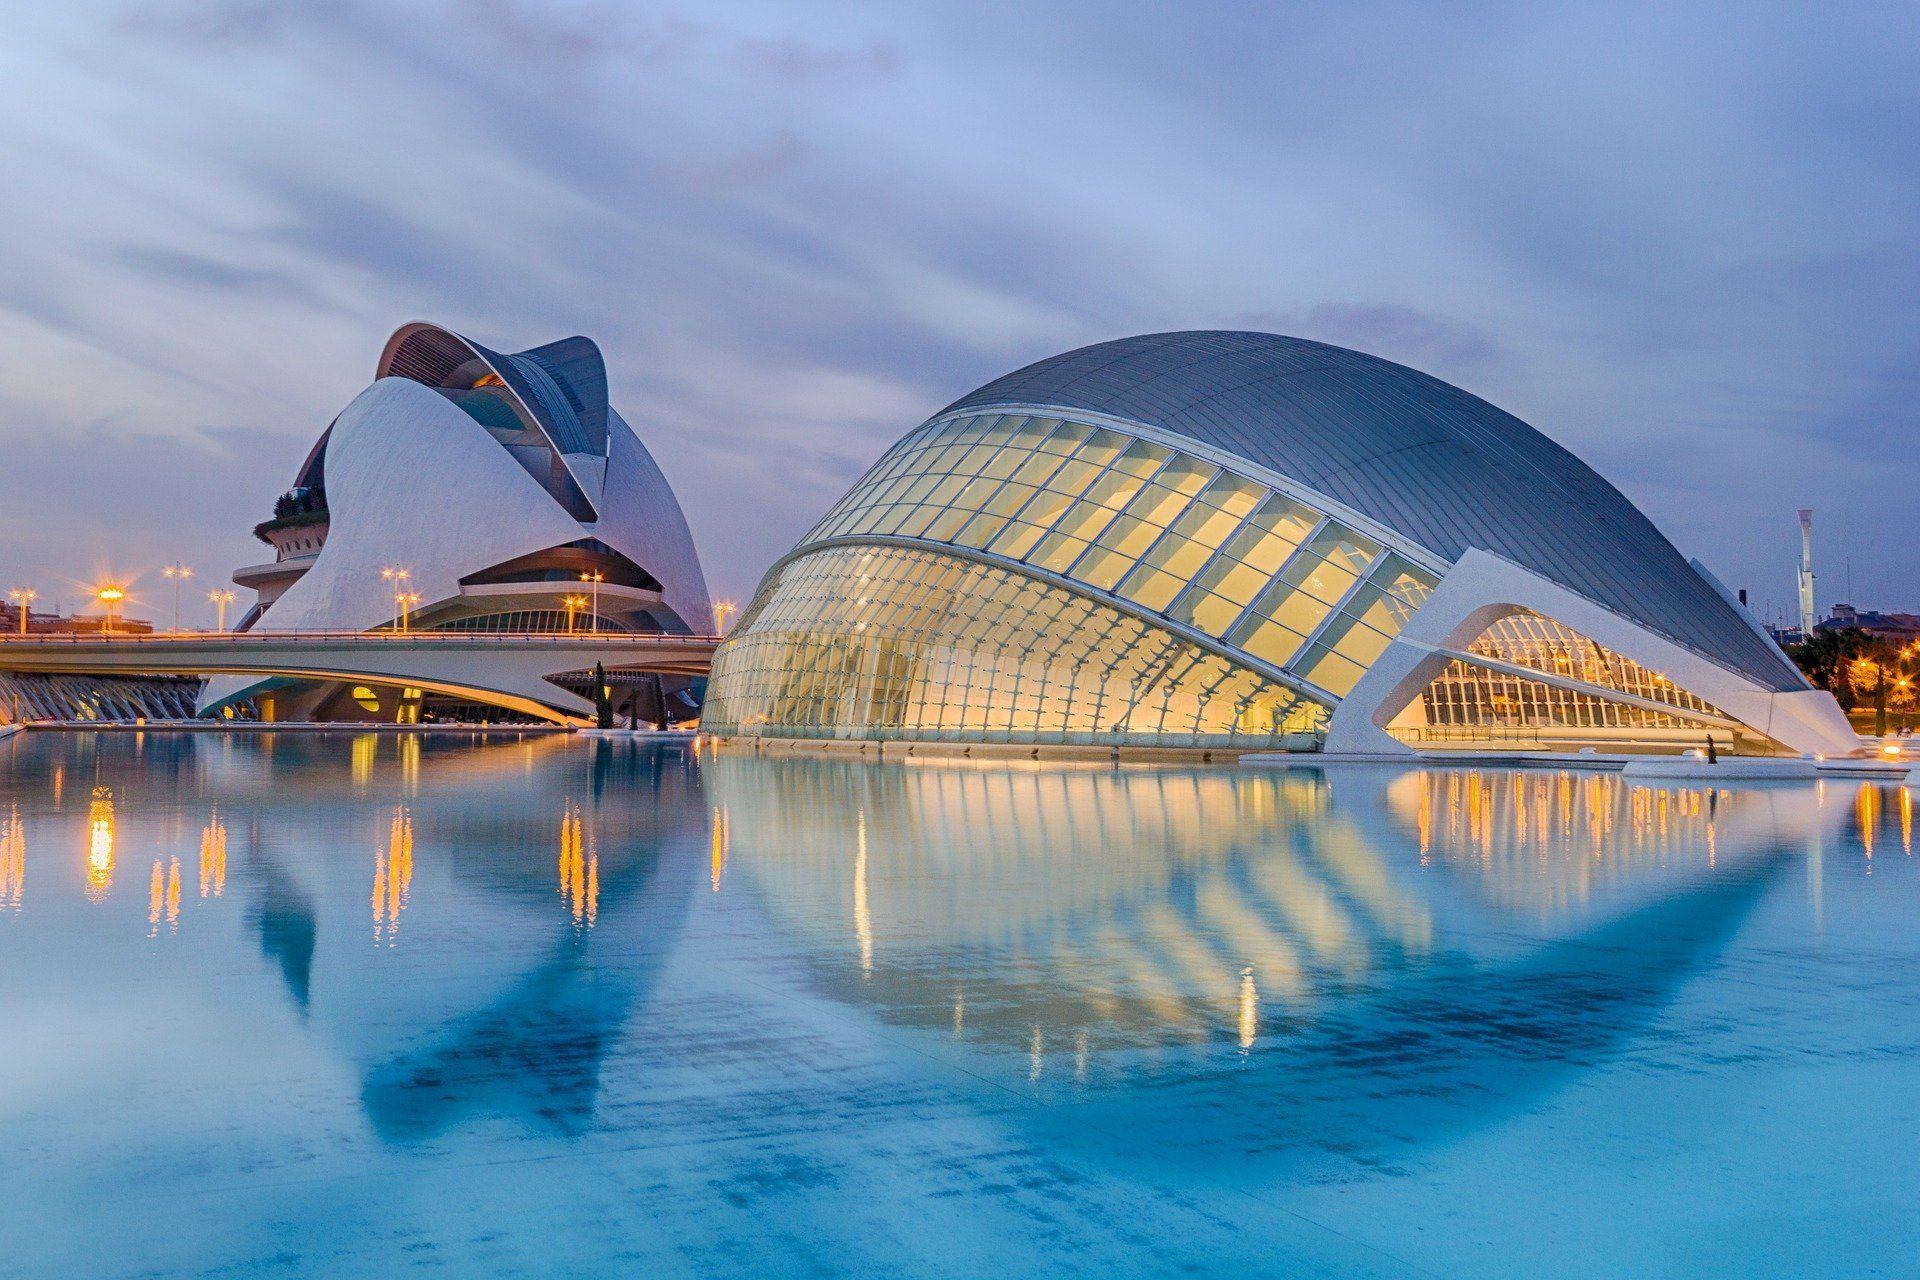 Ciudad De Las Artes Y Las Ciencias Valencia Spain 1920x1080 In 2020 Cool Places To Visit Spain And Portugal Spain Tour